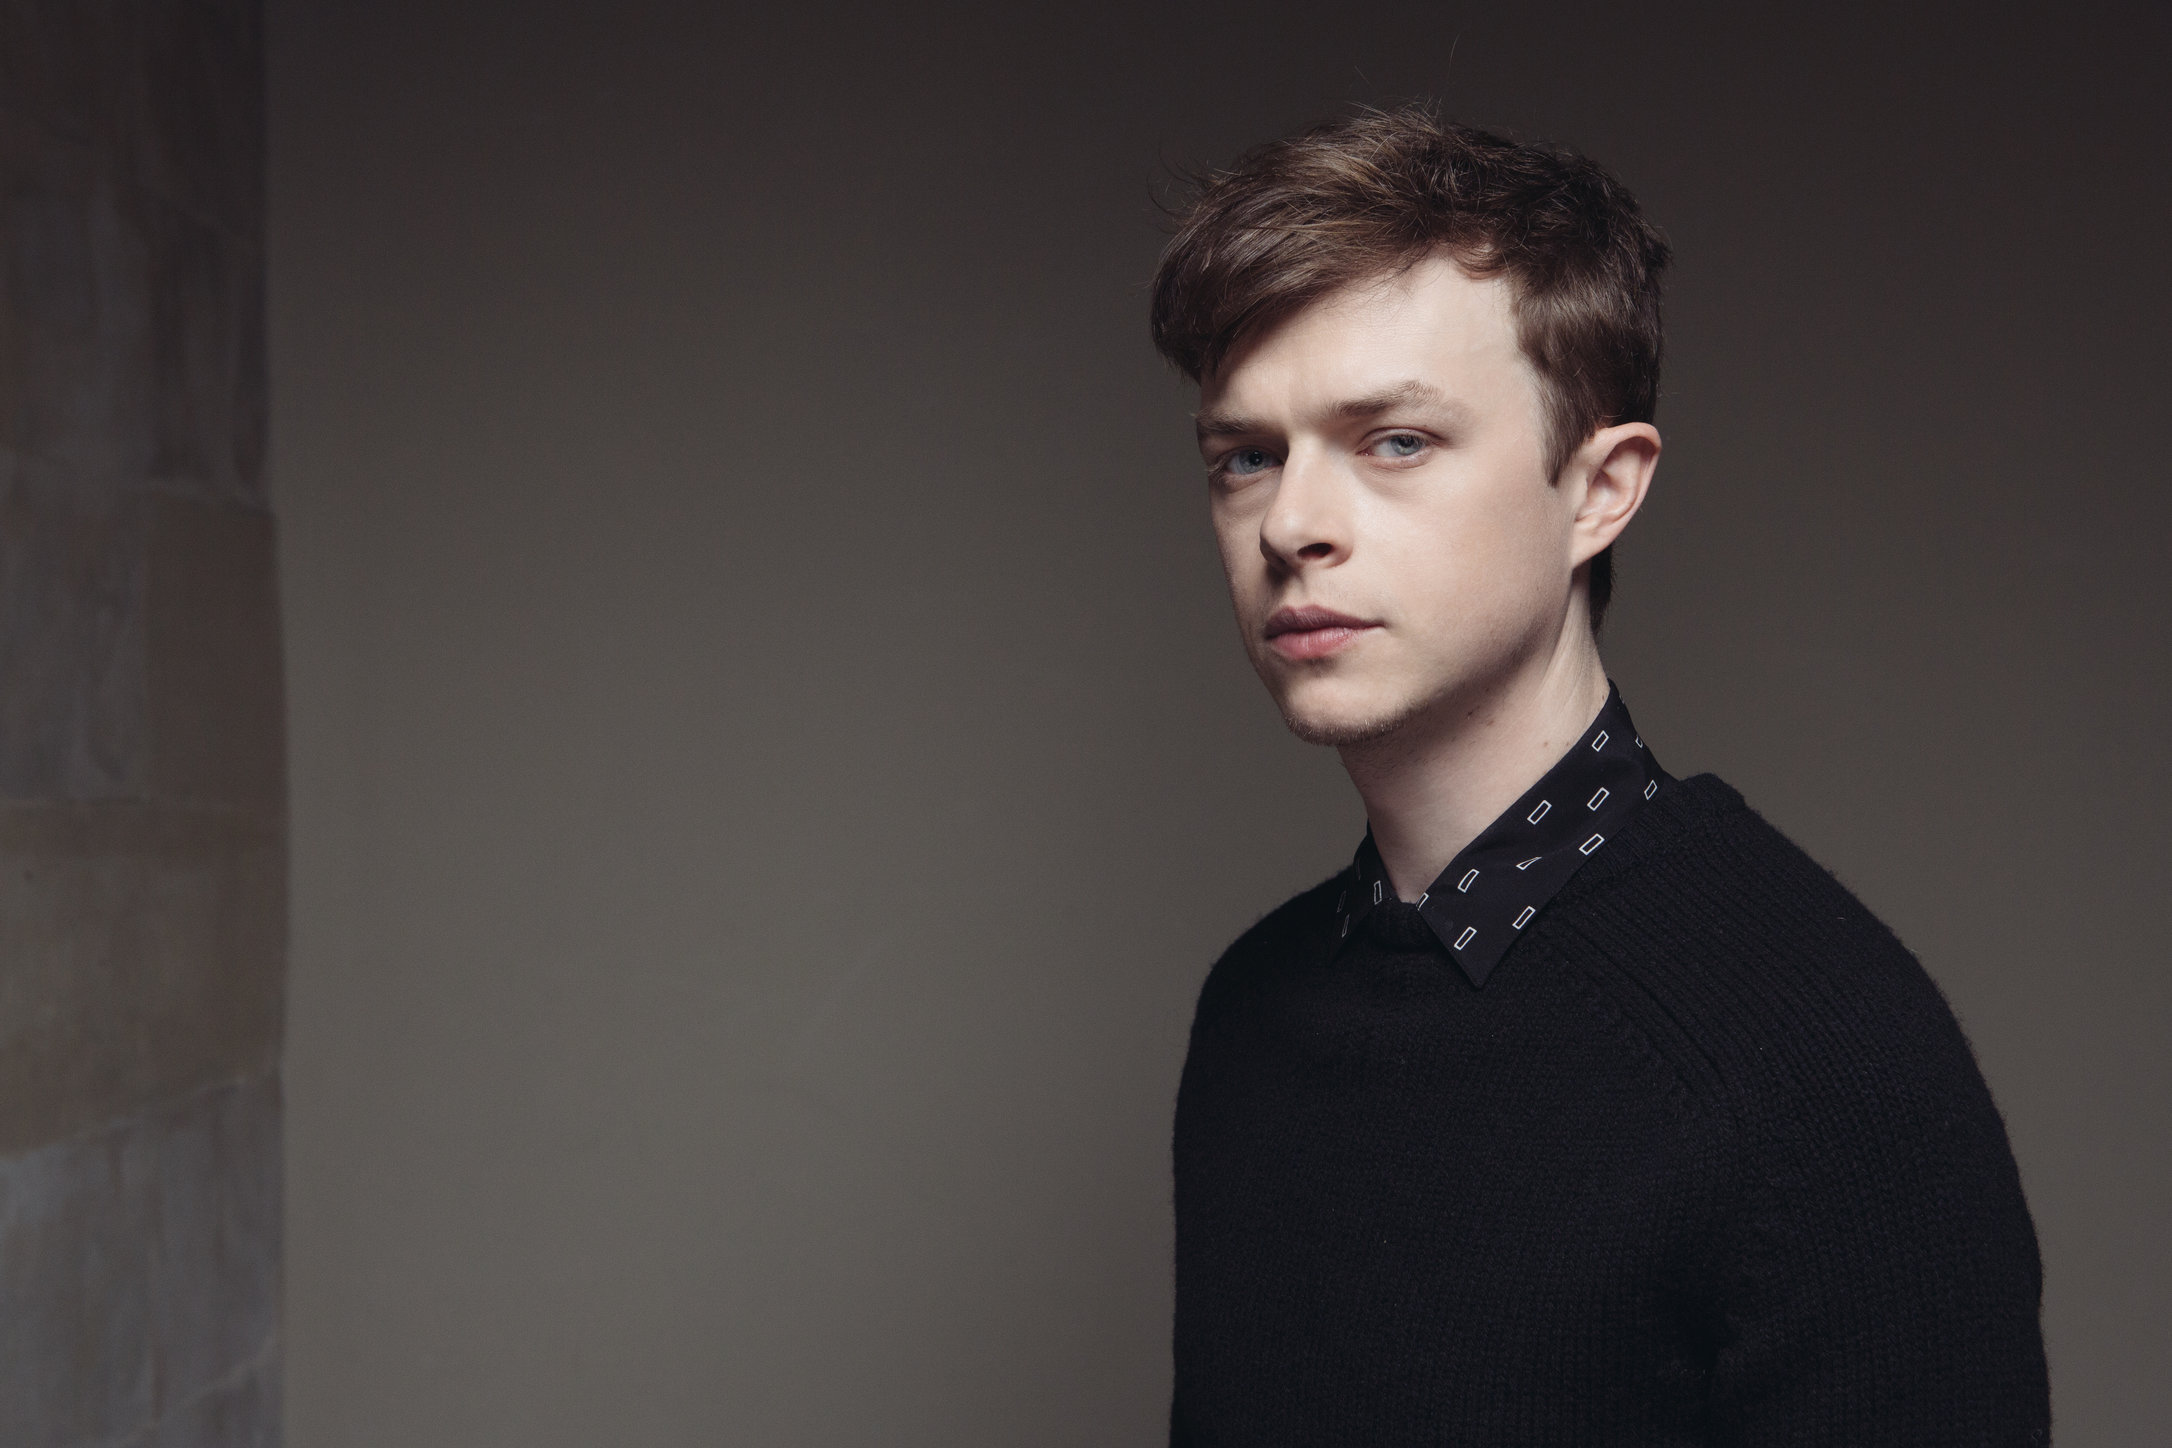 dane dehaan, actor